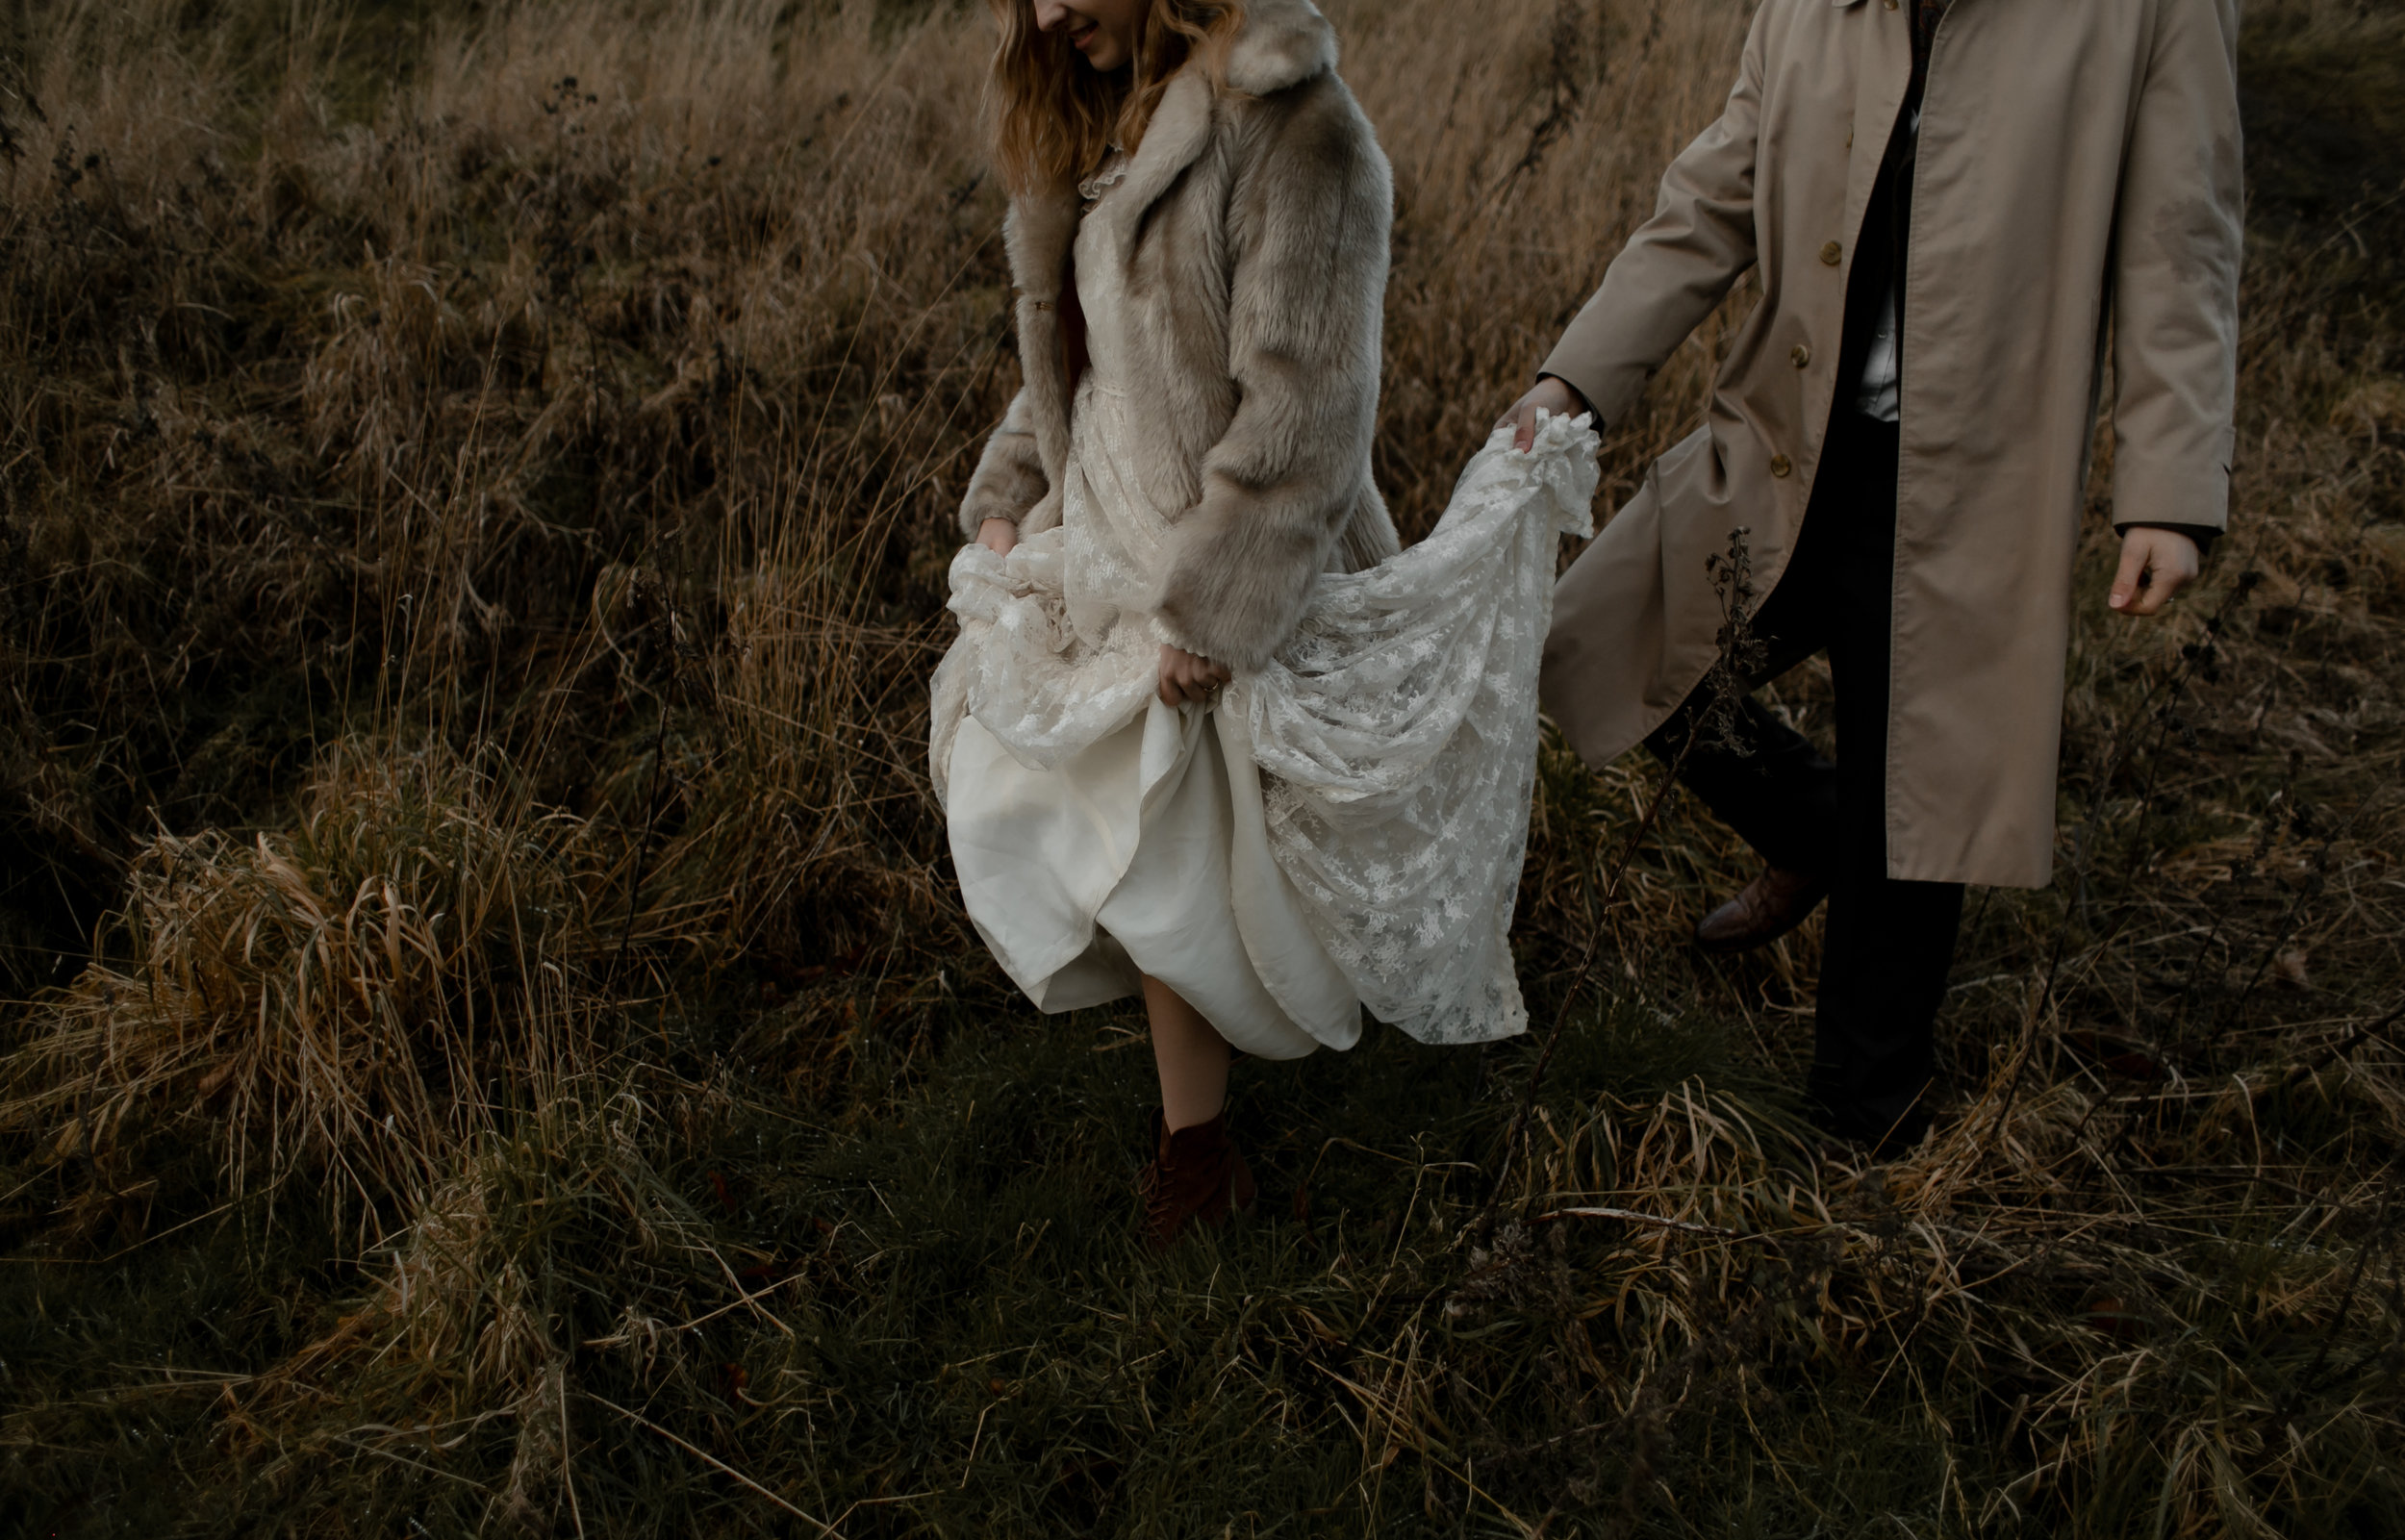 Scotland-Elopement-Edinburgh-Wedding-Bridal-31.jpg